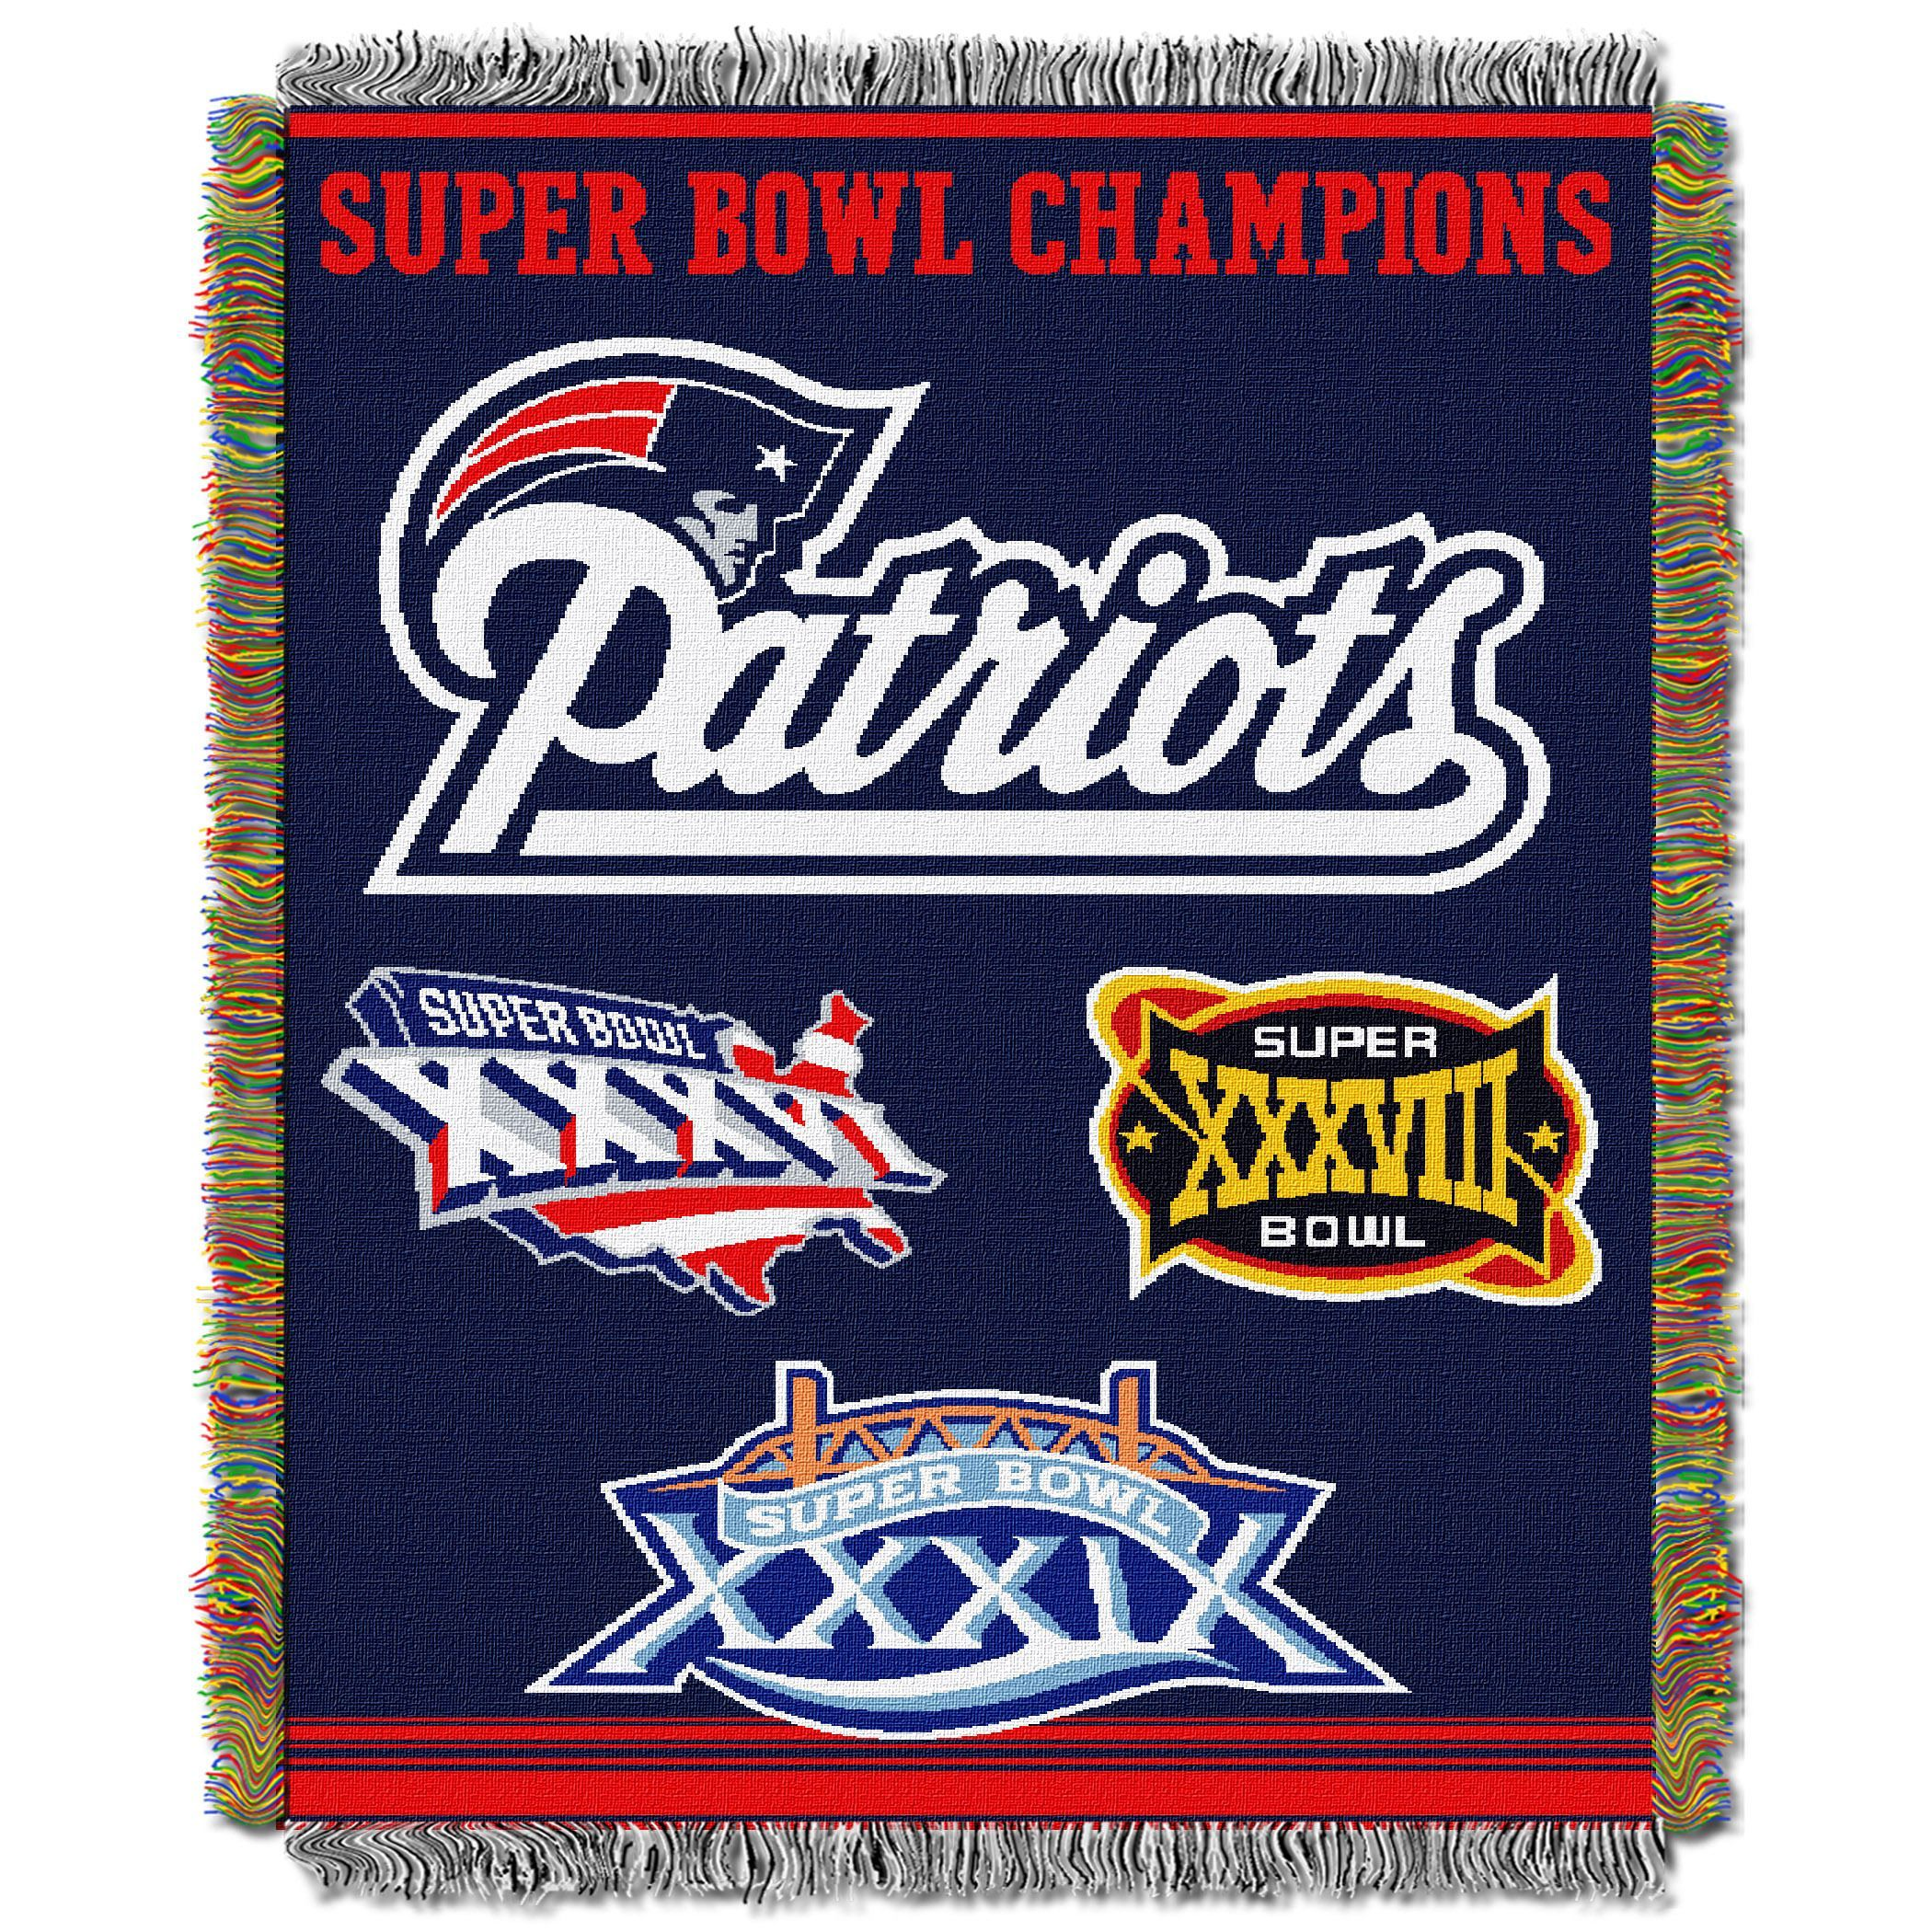 Nfl 051 Super Bowl Champion Woven Tapestry Throw Tapestry Weaving Patriots Bedding New England Patriots